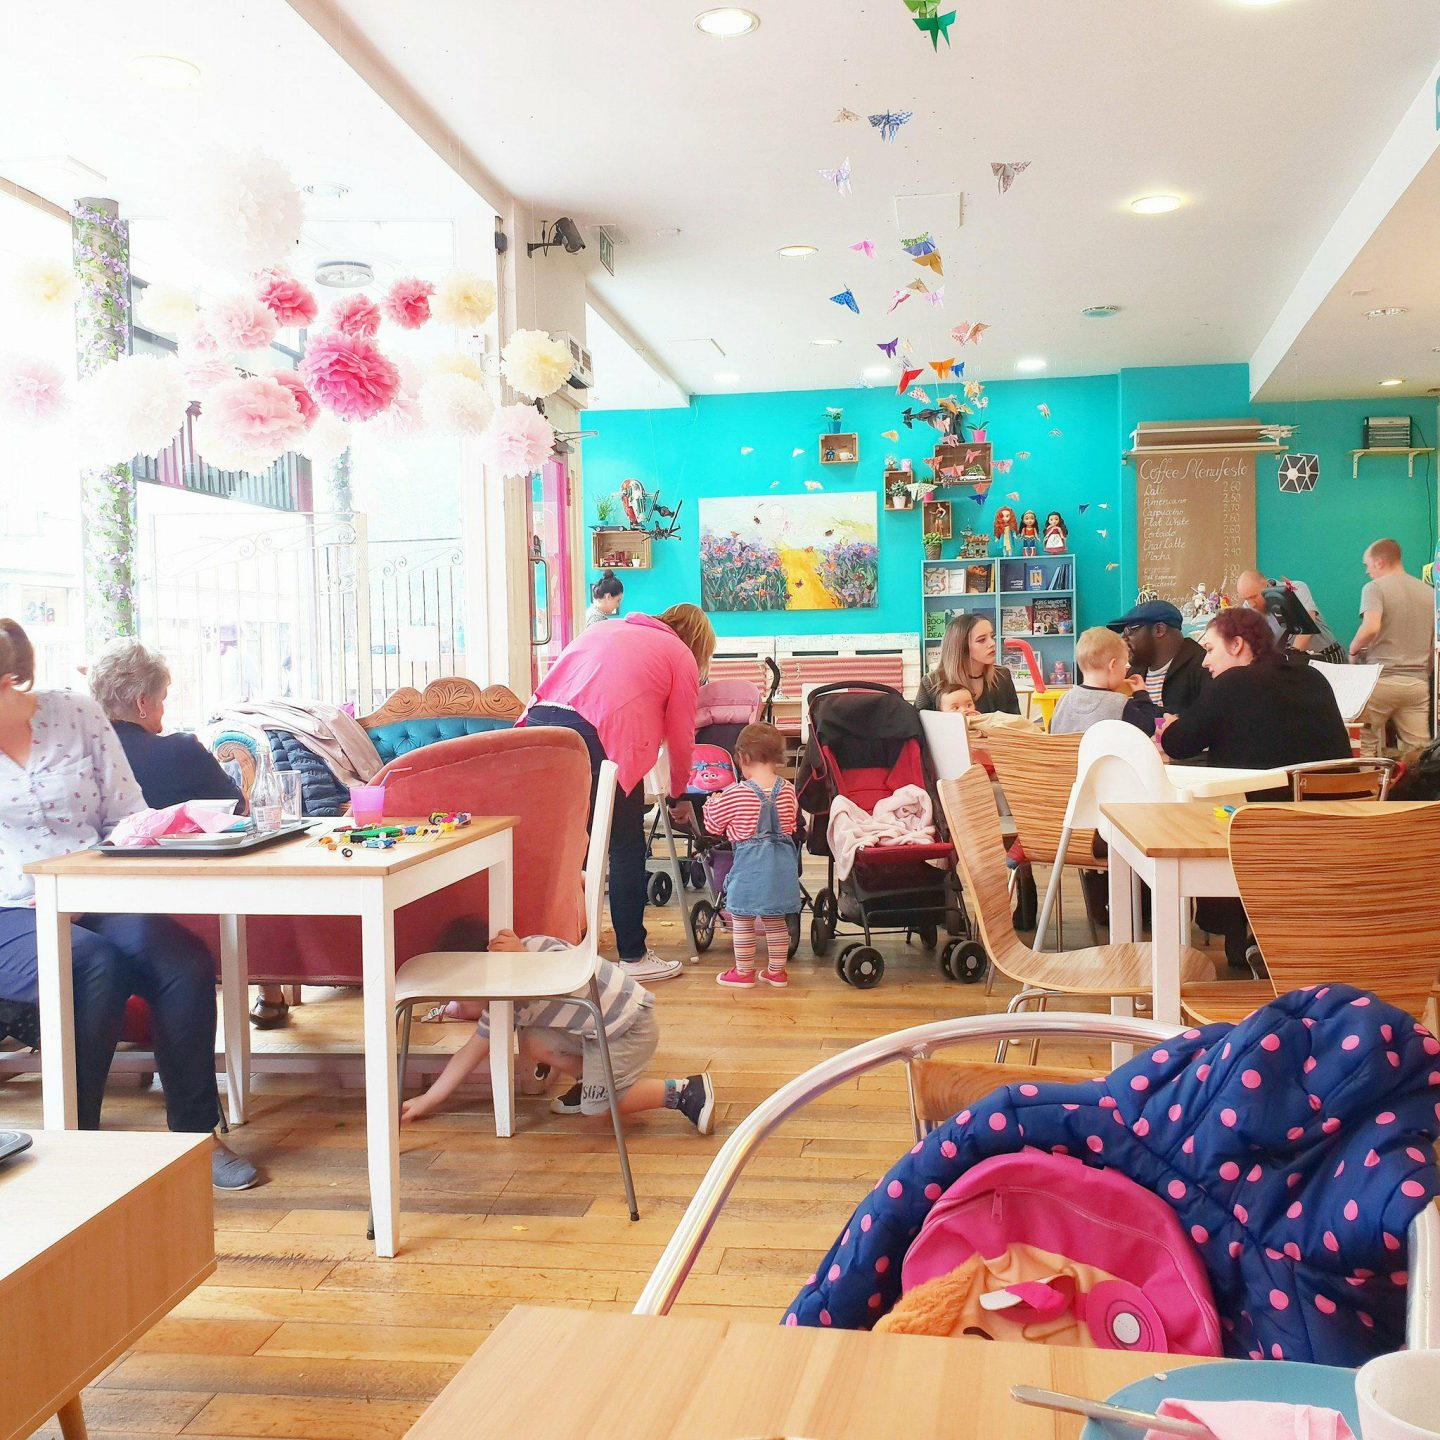 Our visit to the Butterfly Cafe, Dundee | A Baby-Friendly Cafe